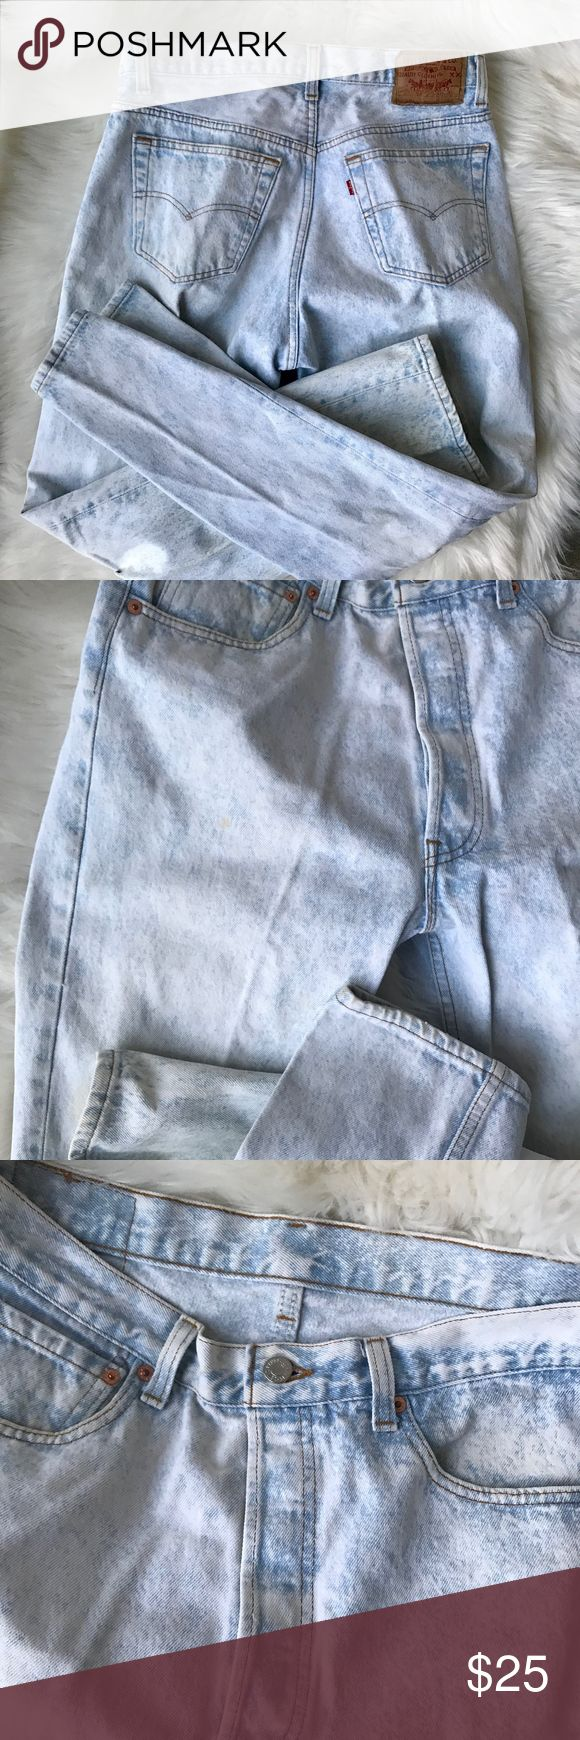 Levi Strauss Co High-Waisted Light Acid Wash Jeans Levi Strauss Co High-Waisted Light Acid Wash Skinny Jeans, Size 32x30 Made in the USA Great condition! No rips, stains or tears. Actual Measurements: Waist- 32 inches  Length- 41 inches Inseam- 30 inches Signature by Levi Strauss Jeans